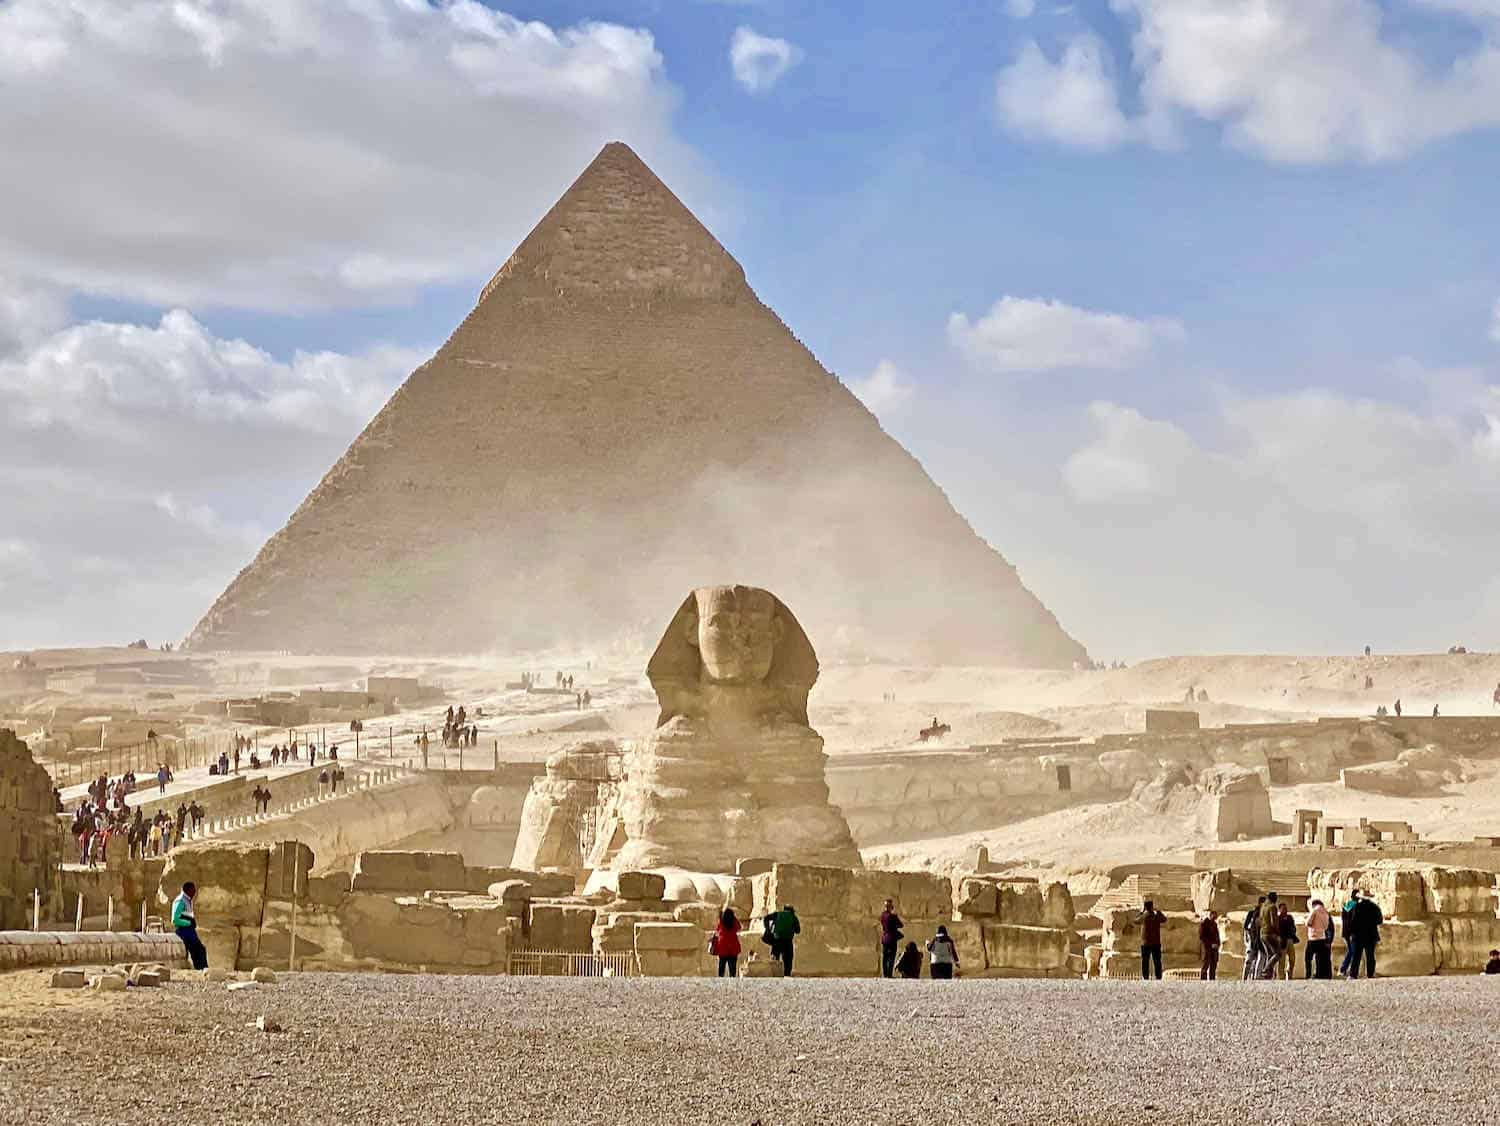 sphinx in front of a pyramid with dust blowing around